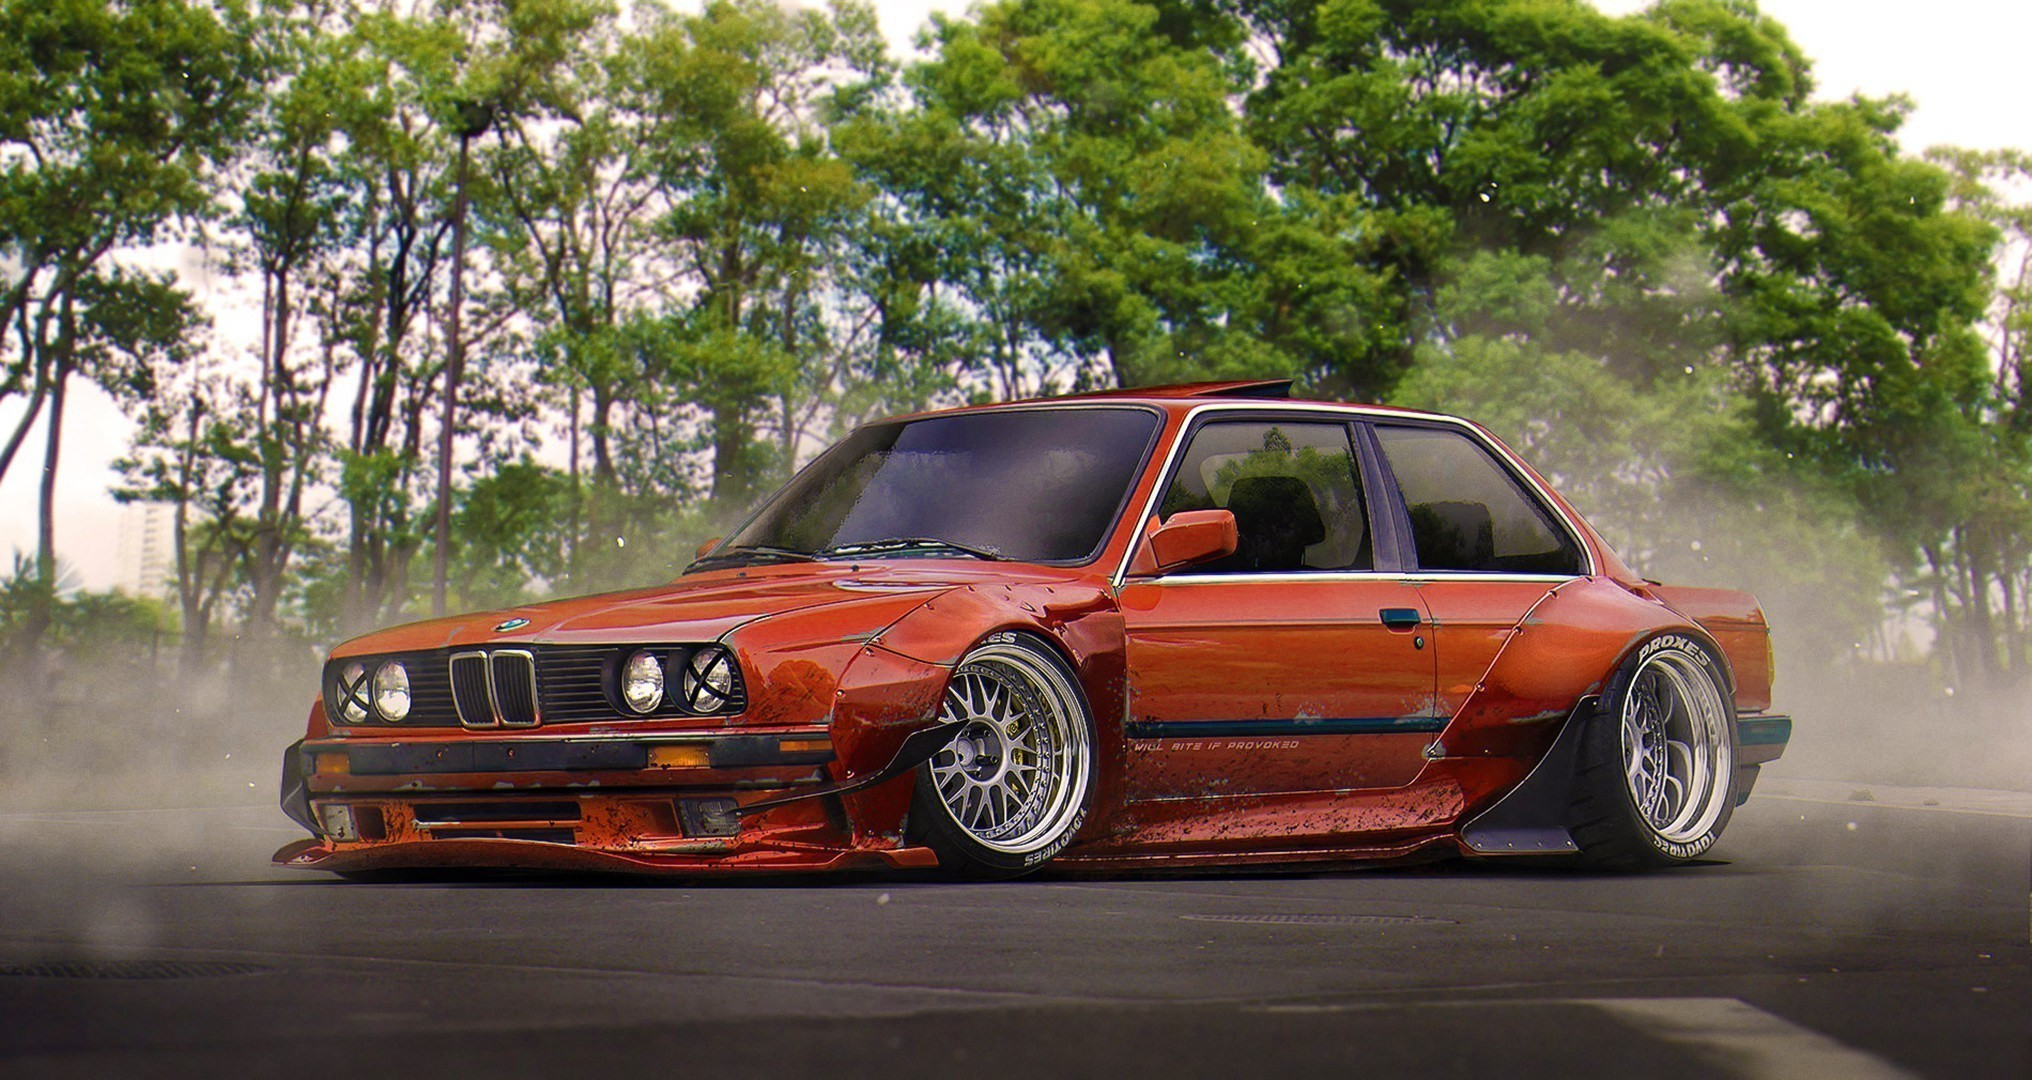 2032x1080 Bmw M3 E30 Wallpaper Autos Bessere Auto Tapeten